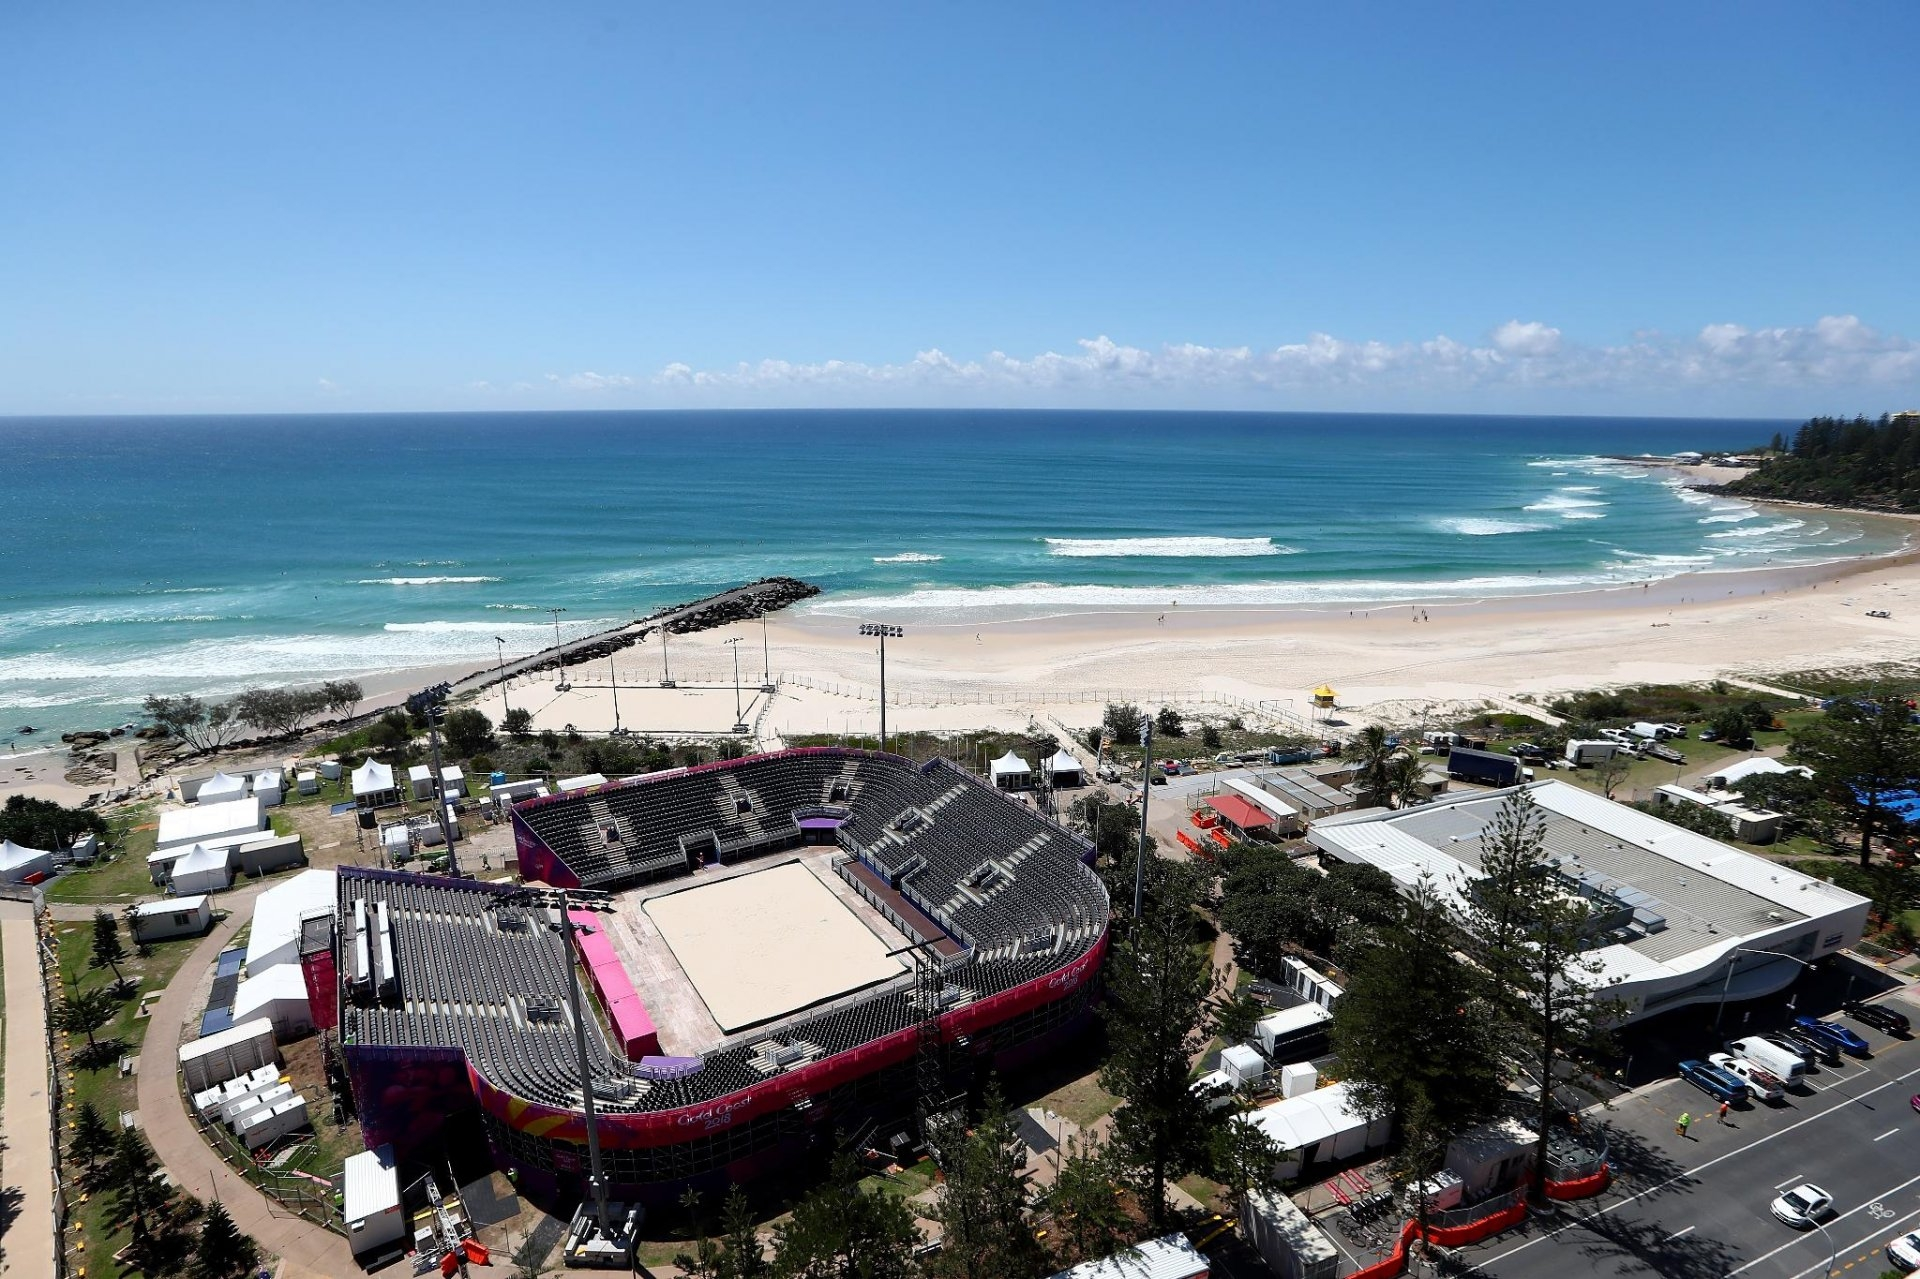 The beach arena of the Commonwealth Games will host matches of teams from 17 countries (Photocredit: CG2018)